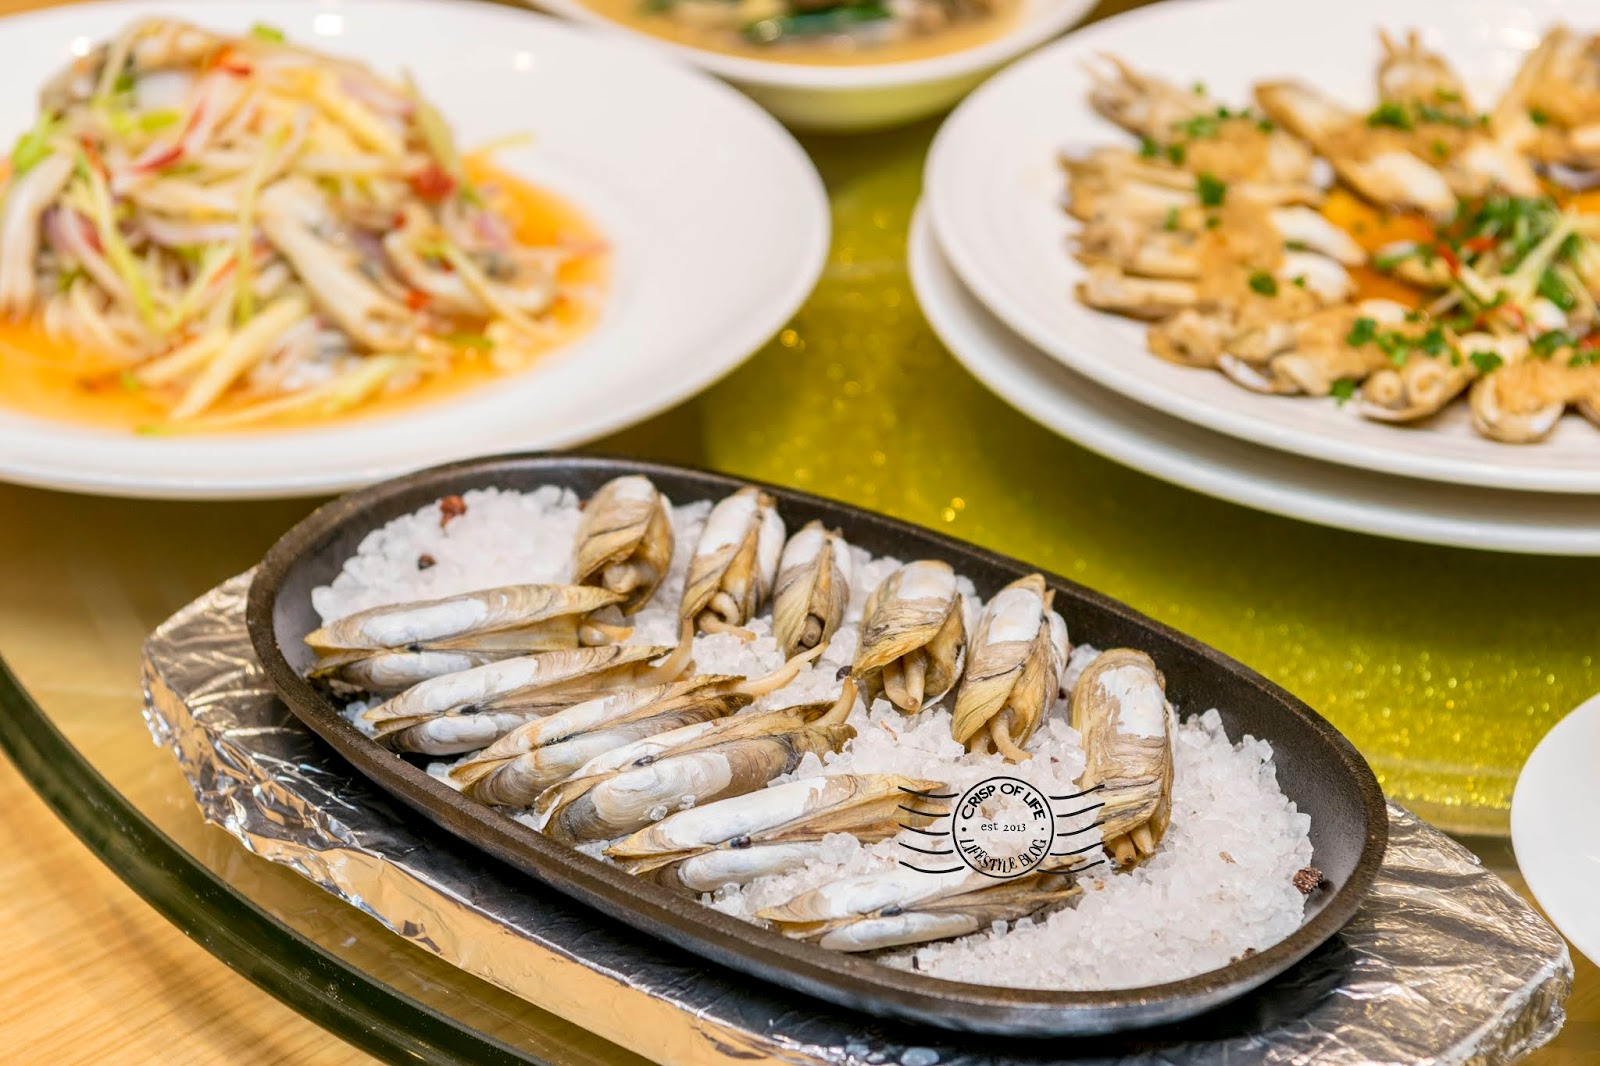 Taste the DOUTOU Clams (哆头蛏) Exclusively Available at Putien Malaysia Only